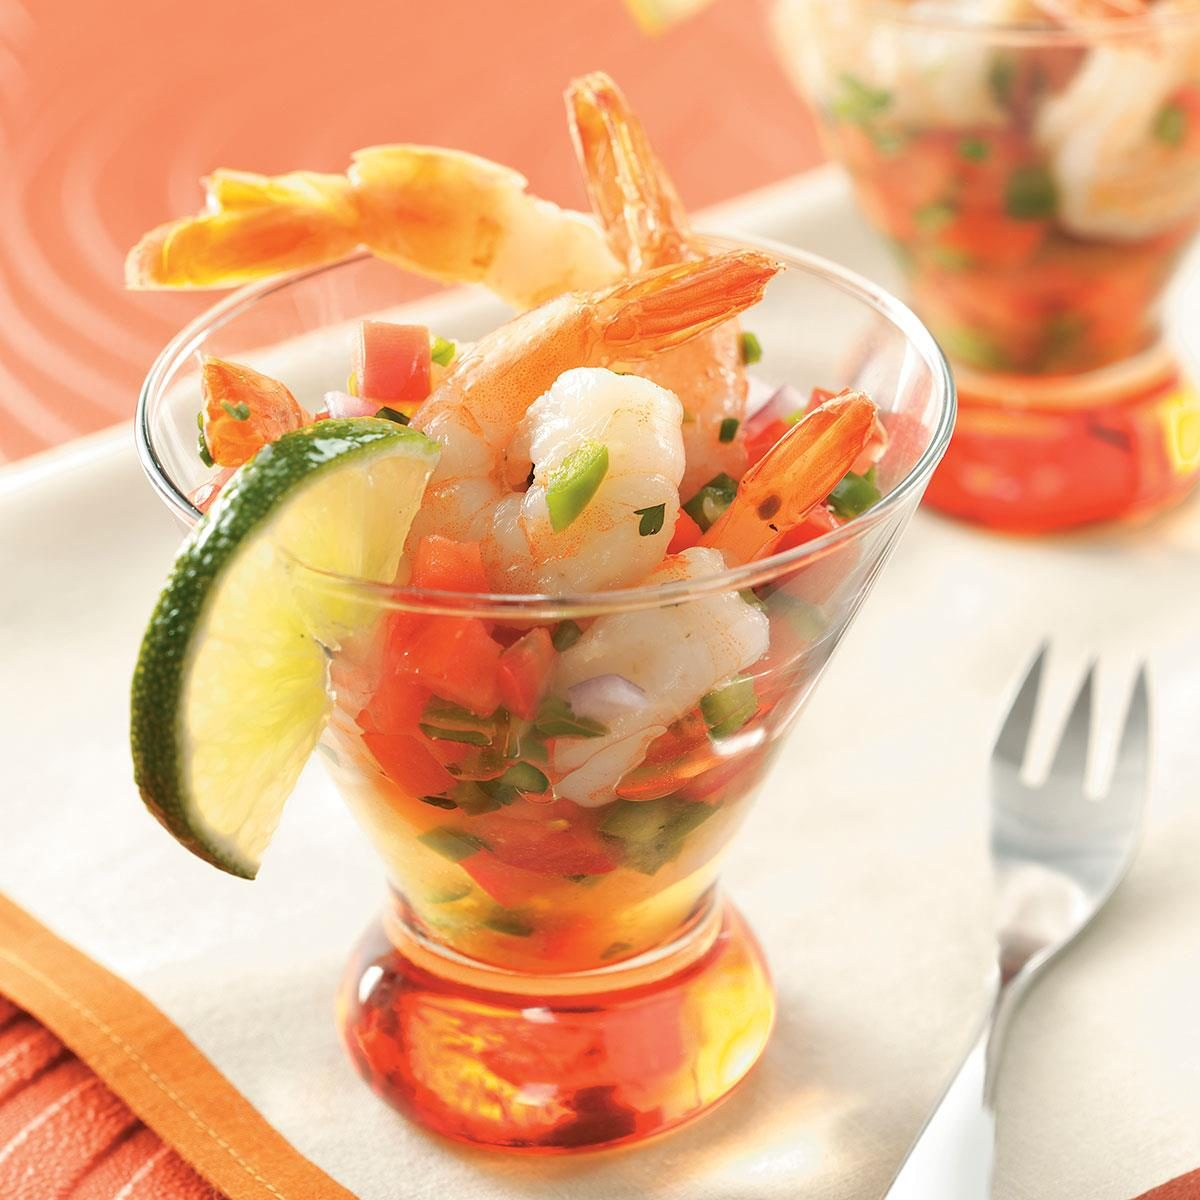 Easy Appetizers For Christmas Cocktail Party: Ensenada Shrimp Cocktail Recipe